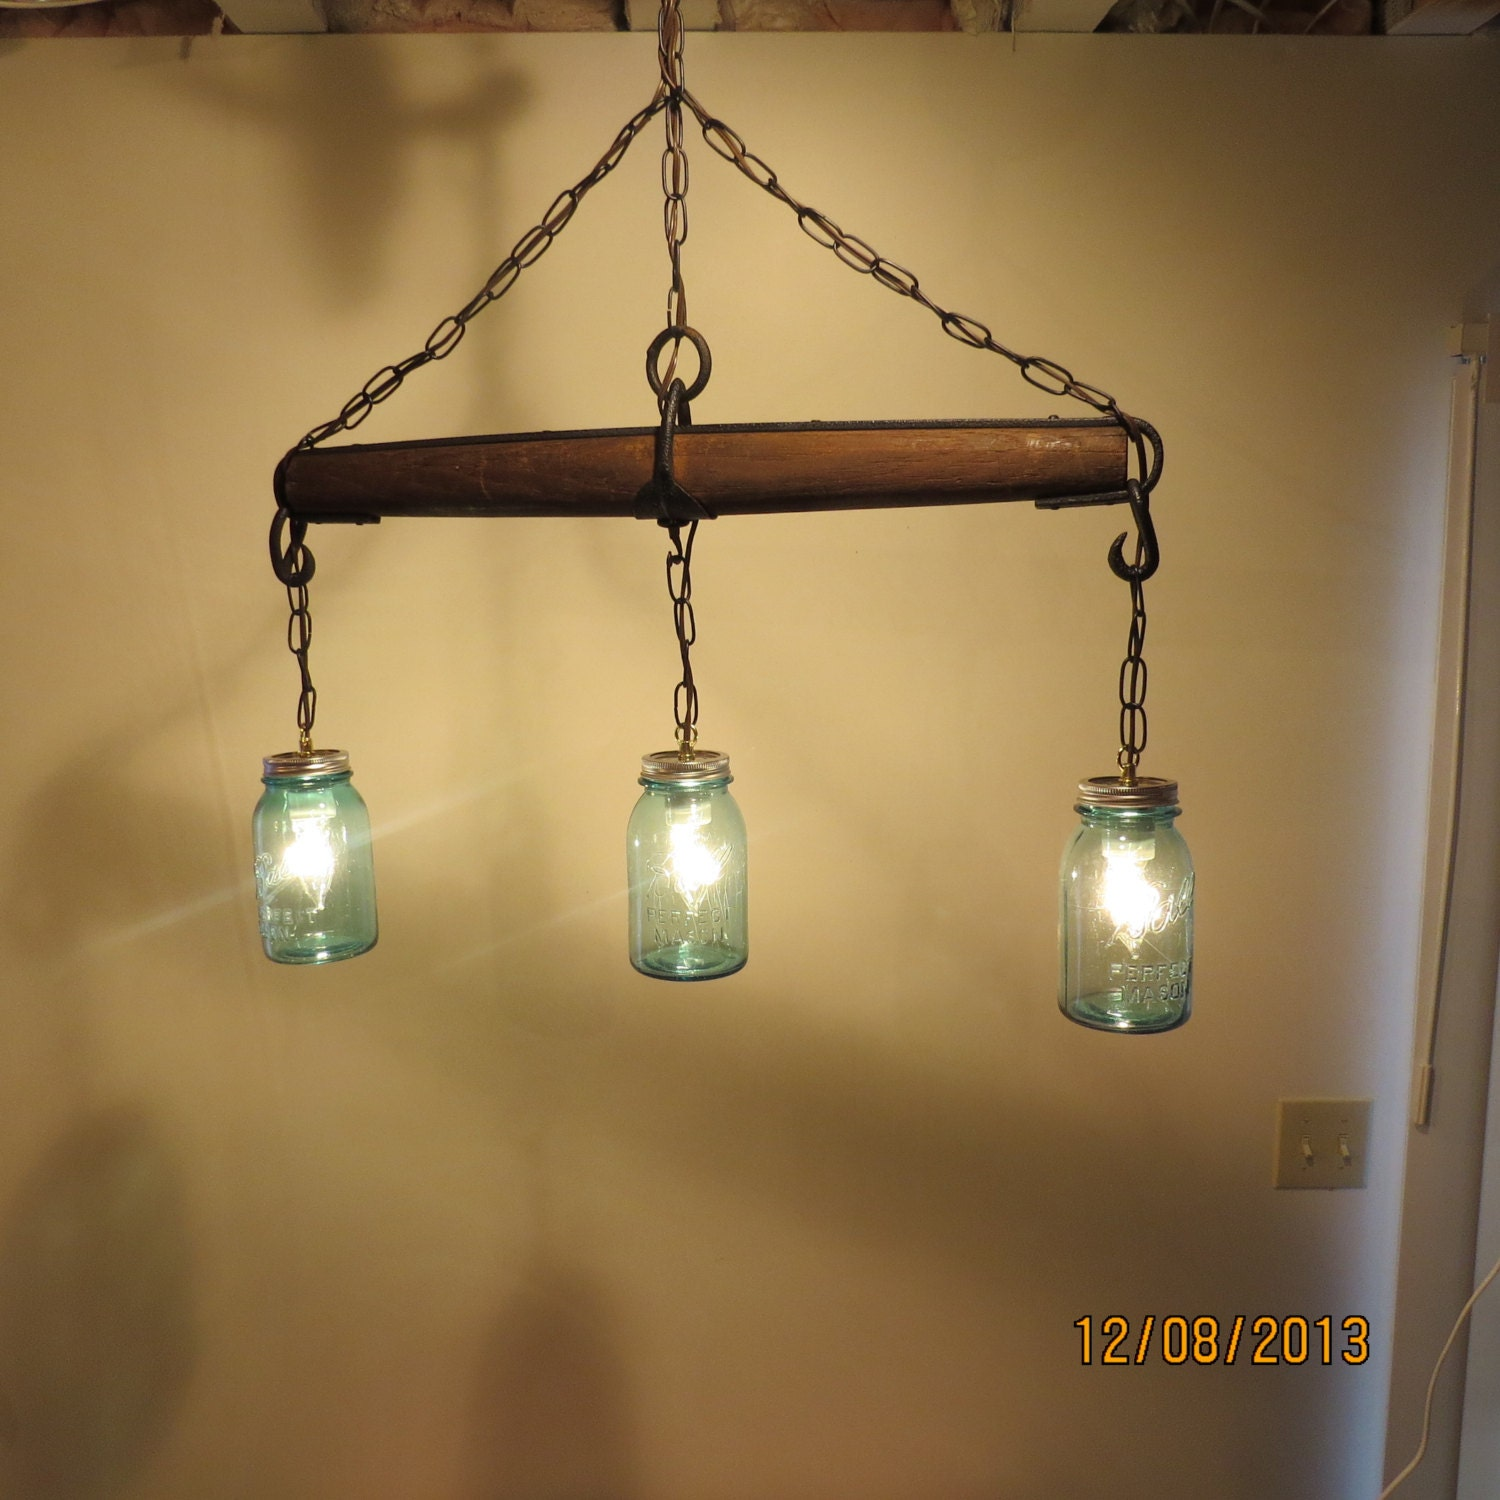 Just Reduced Rustic Handmade 3 Bulb Hanging Light Fixture Or